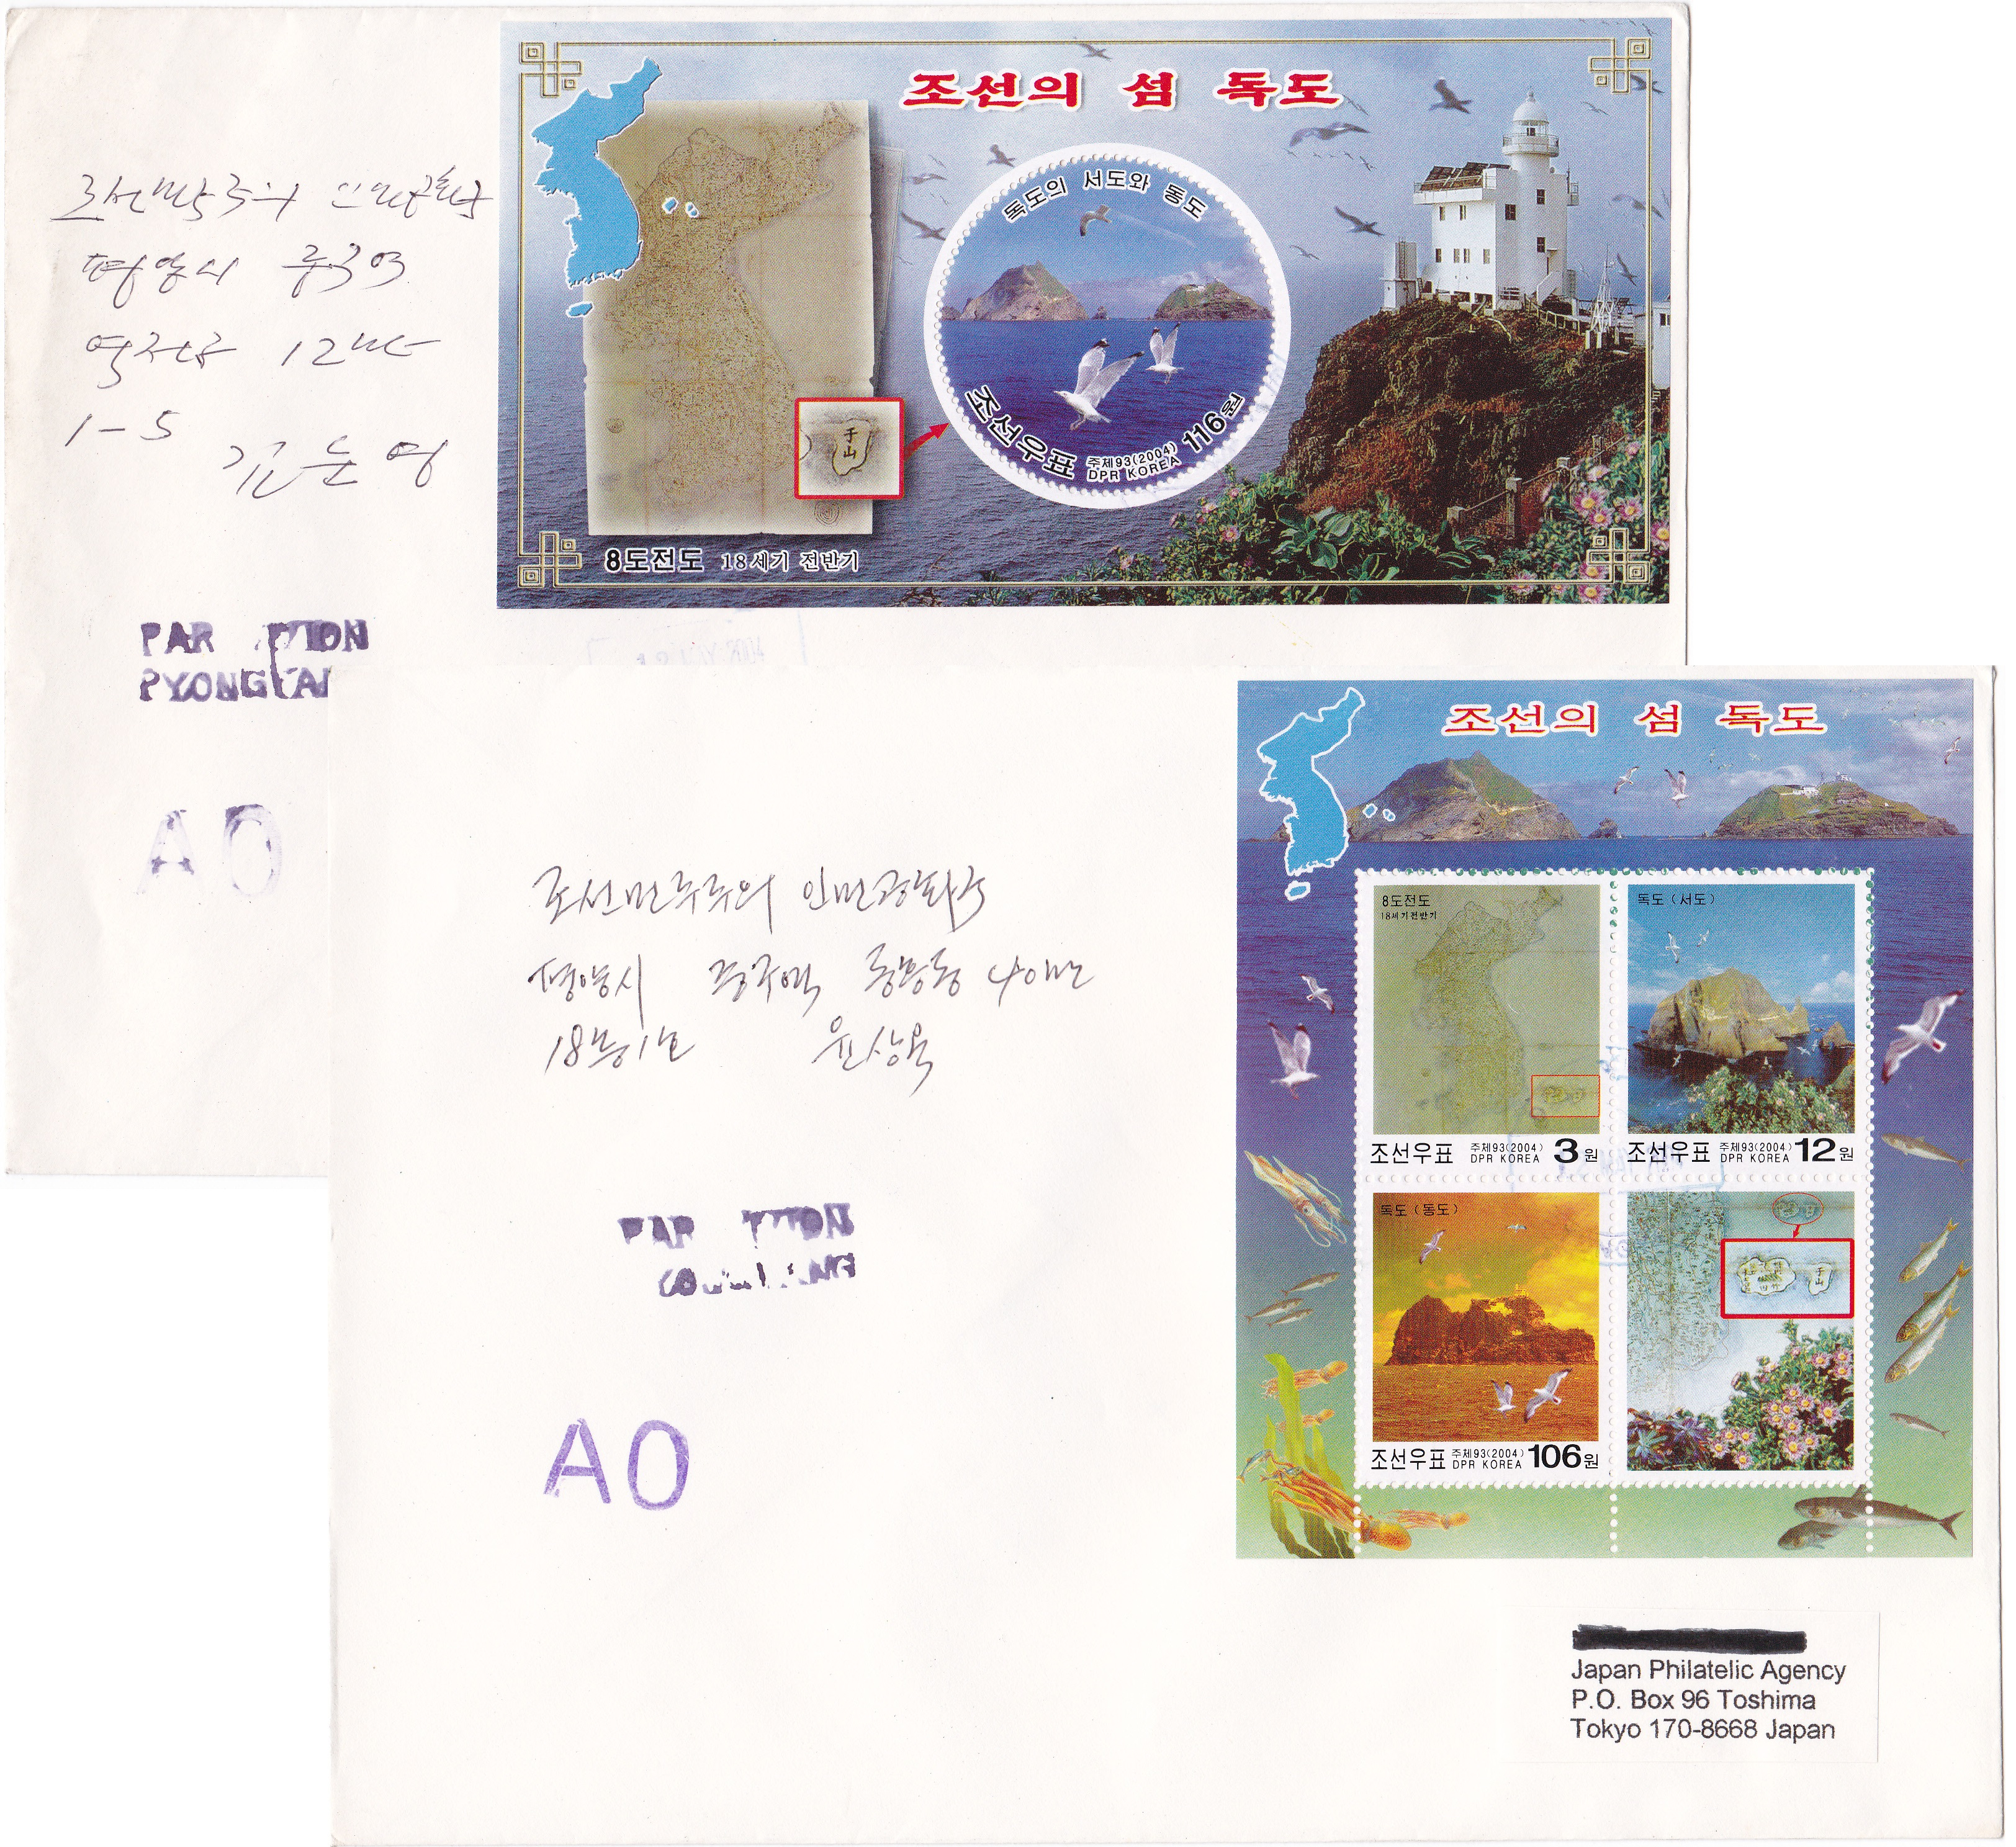 L9646, Korea 2 pcs M/S Stamps First Day Cover, Dokdo Islands Map (Takeshima), 2004